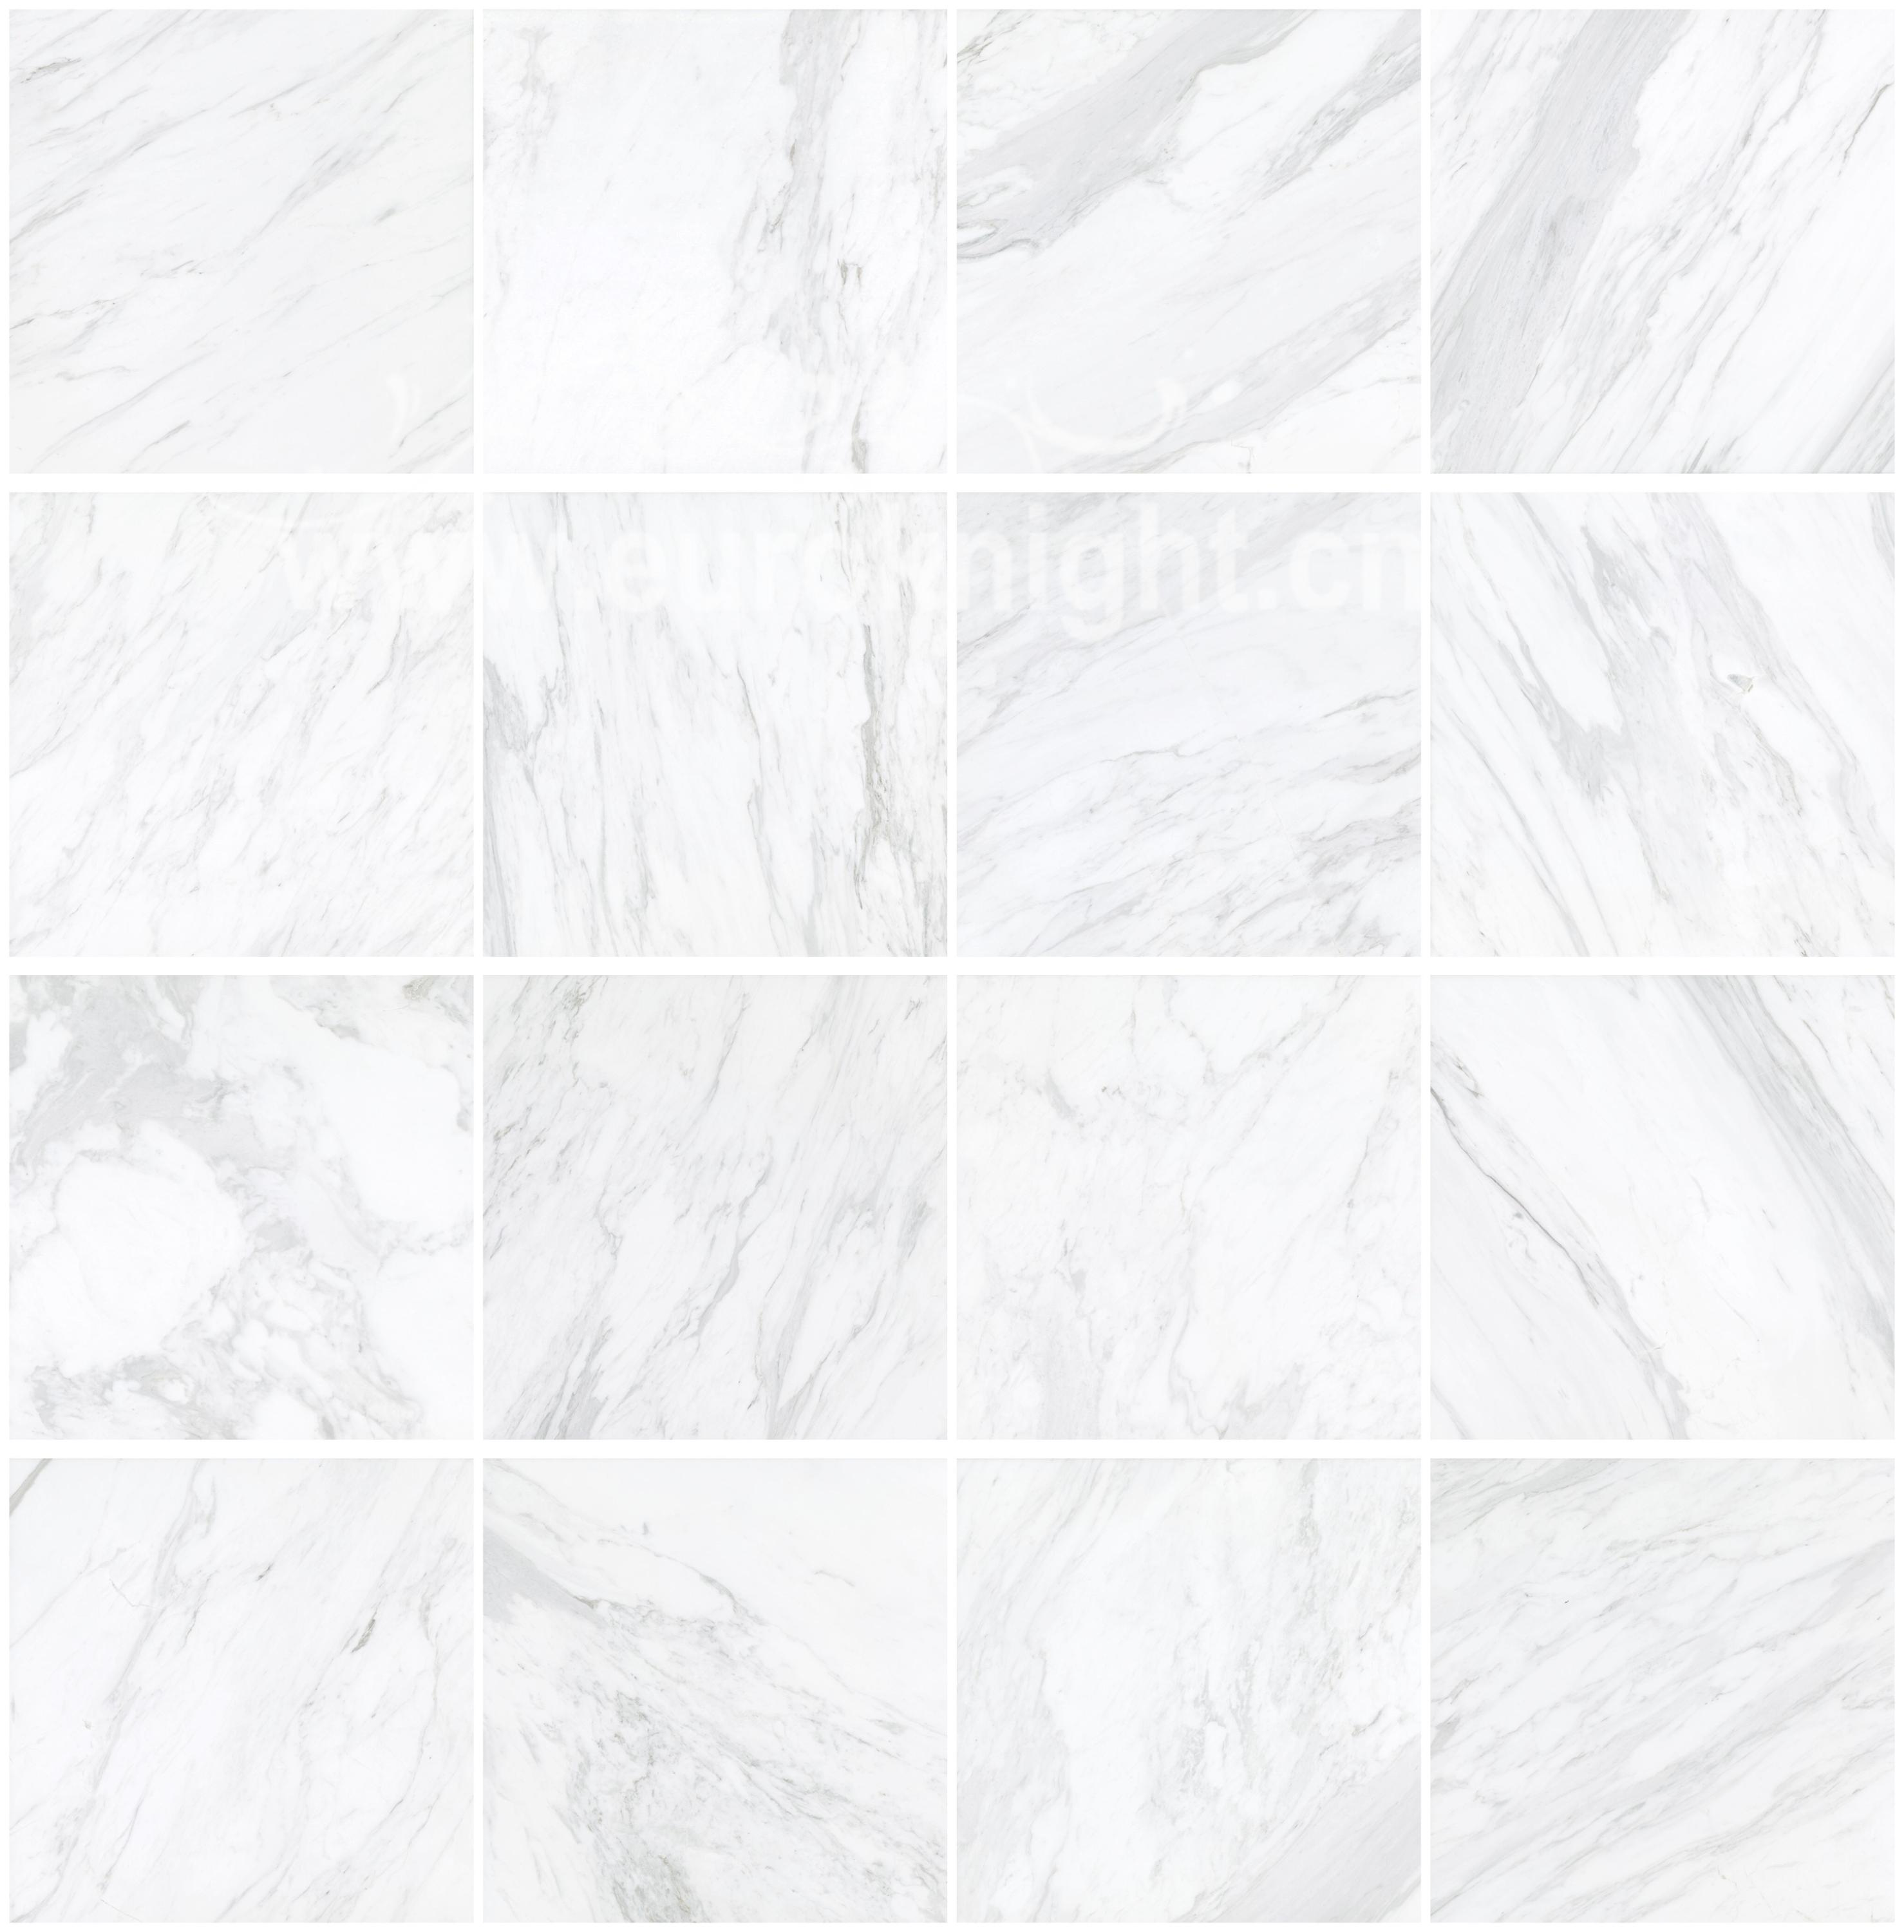 Bone white floor tiles bone white floor tiles suppliers and bone white floor tiles bone white floor tiles suppliers and manufacturers at alibaba dailygadgetfo Image collections